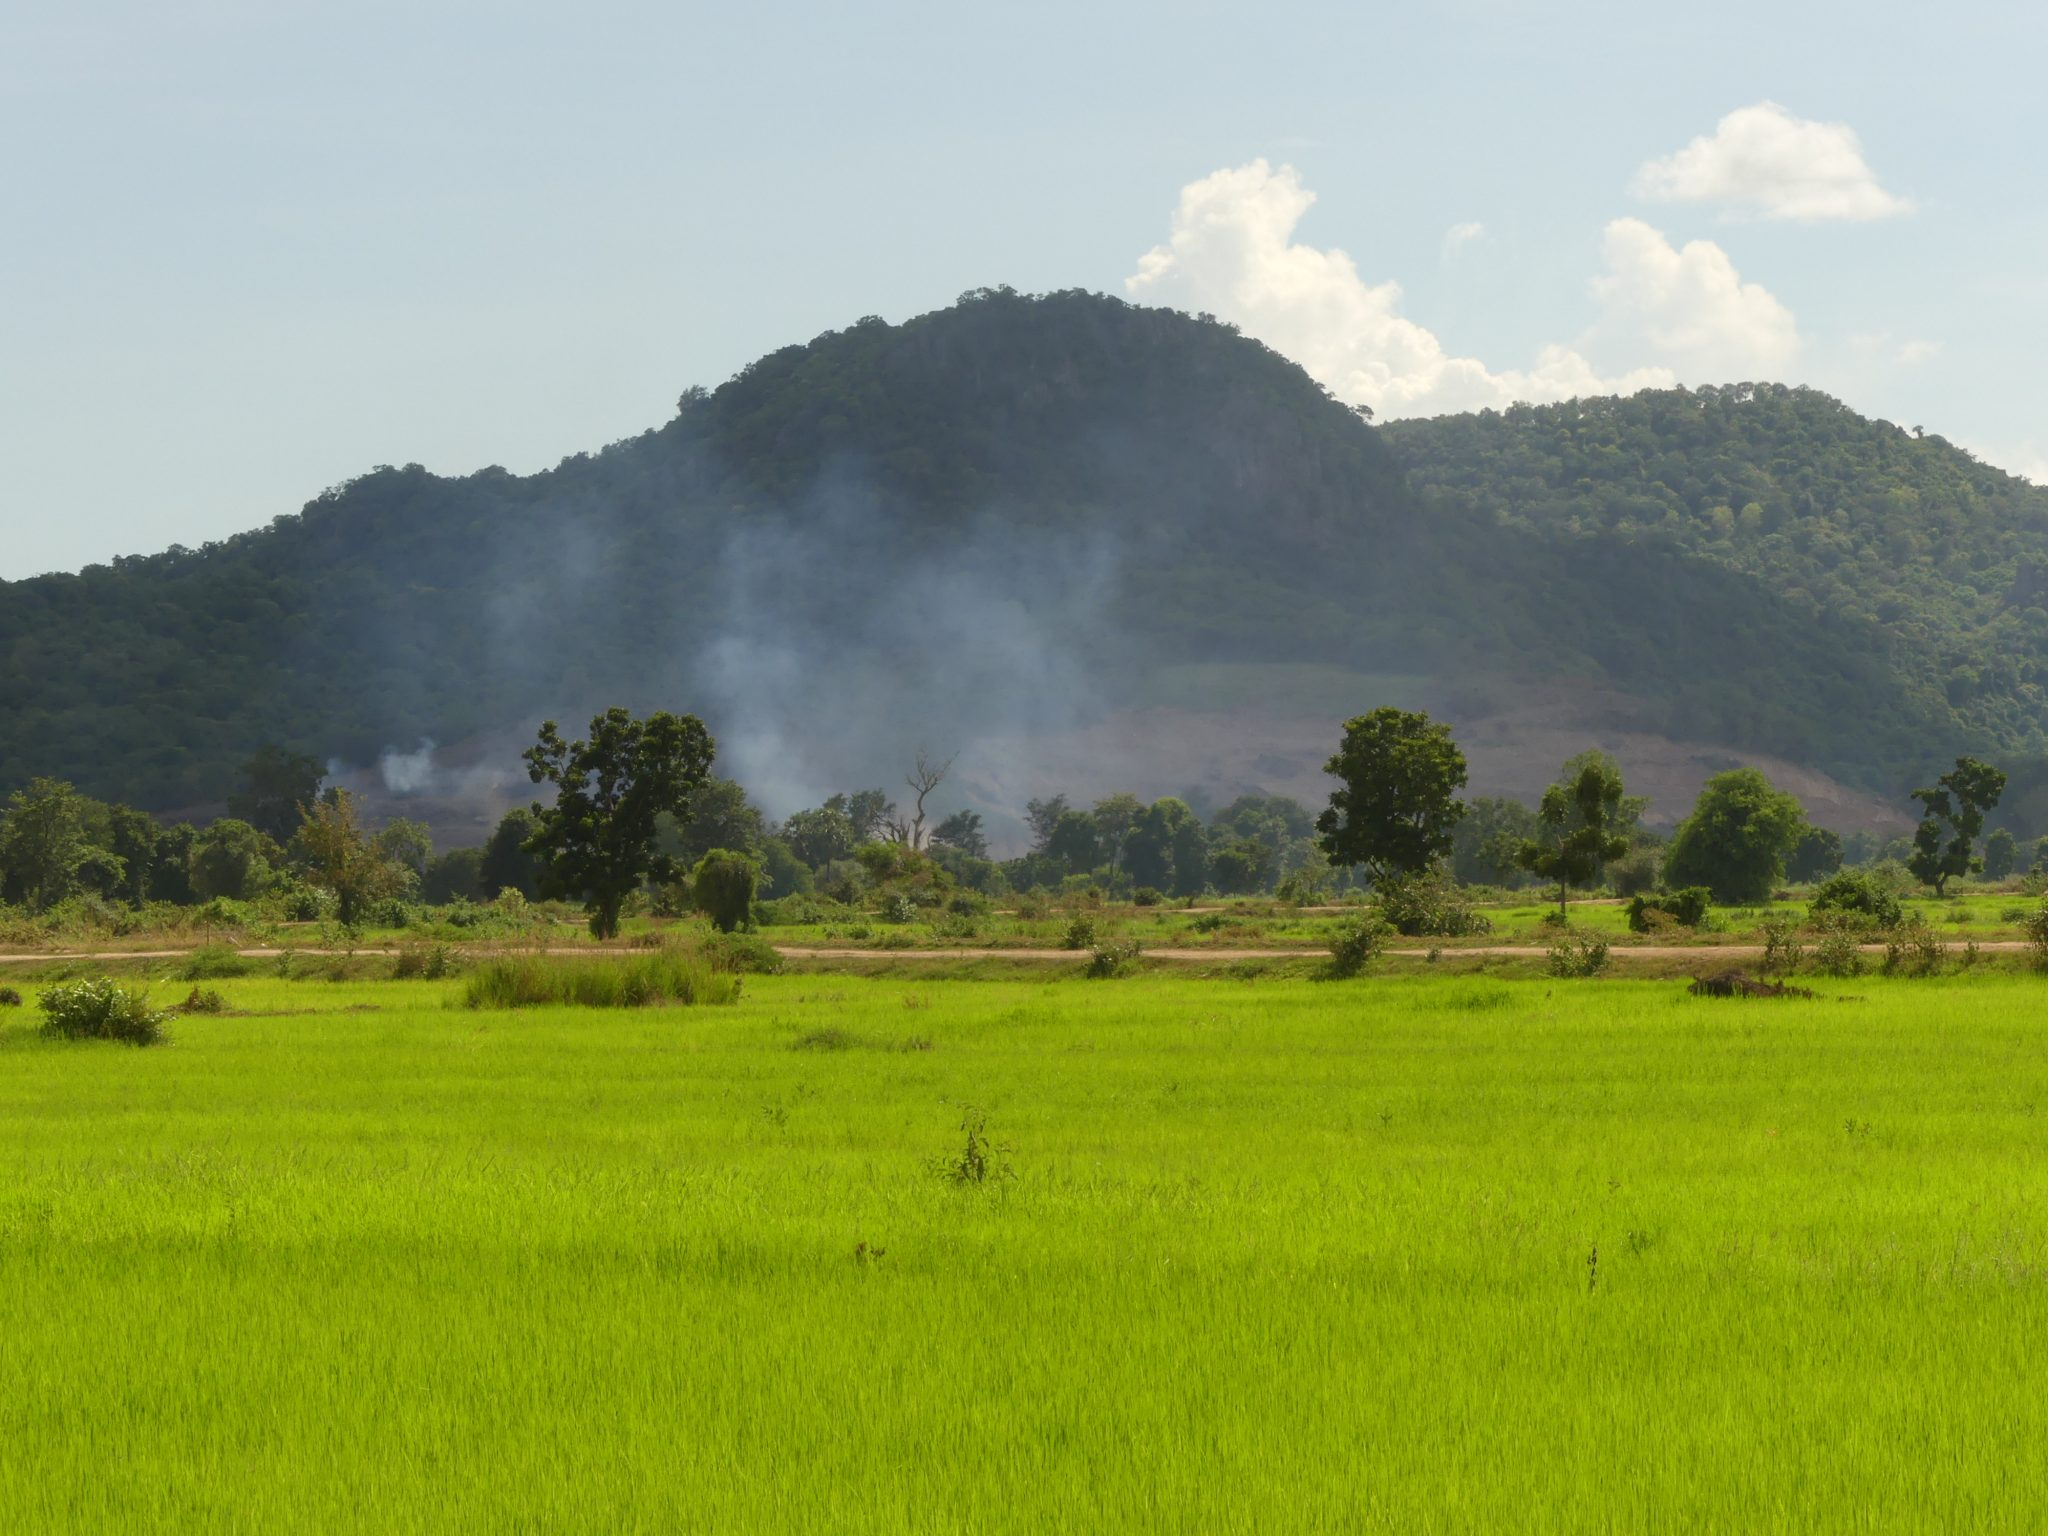 Rice paddies in Battambang